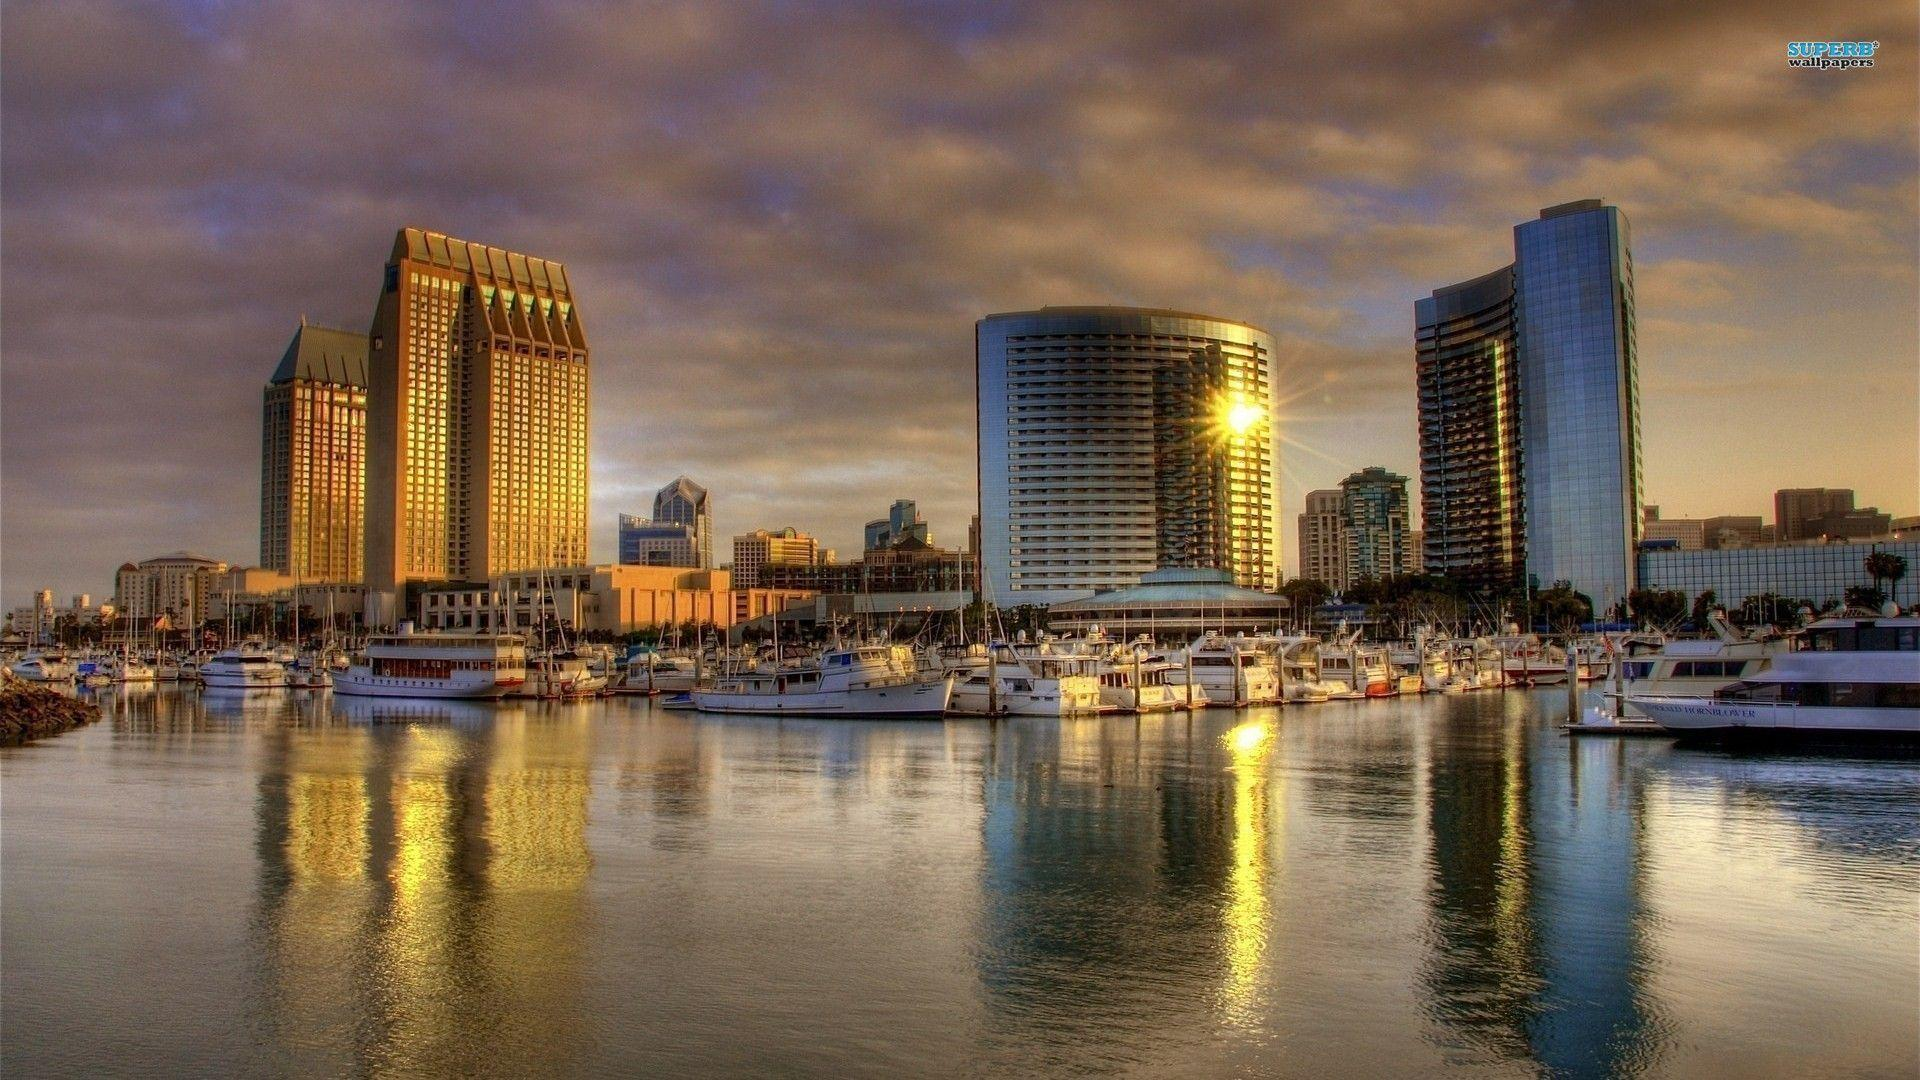 San Diego wallpaper - World wallpapers - #